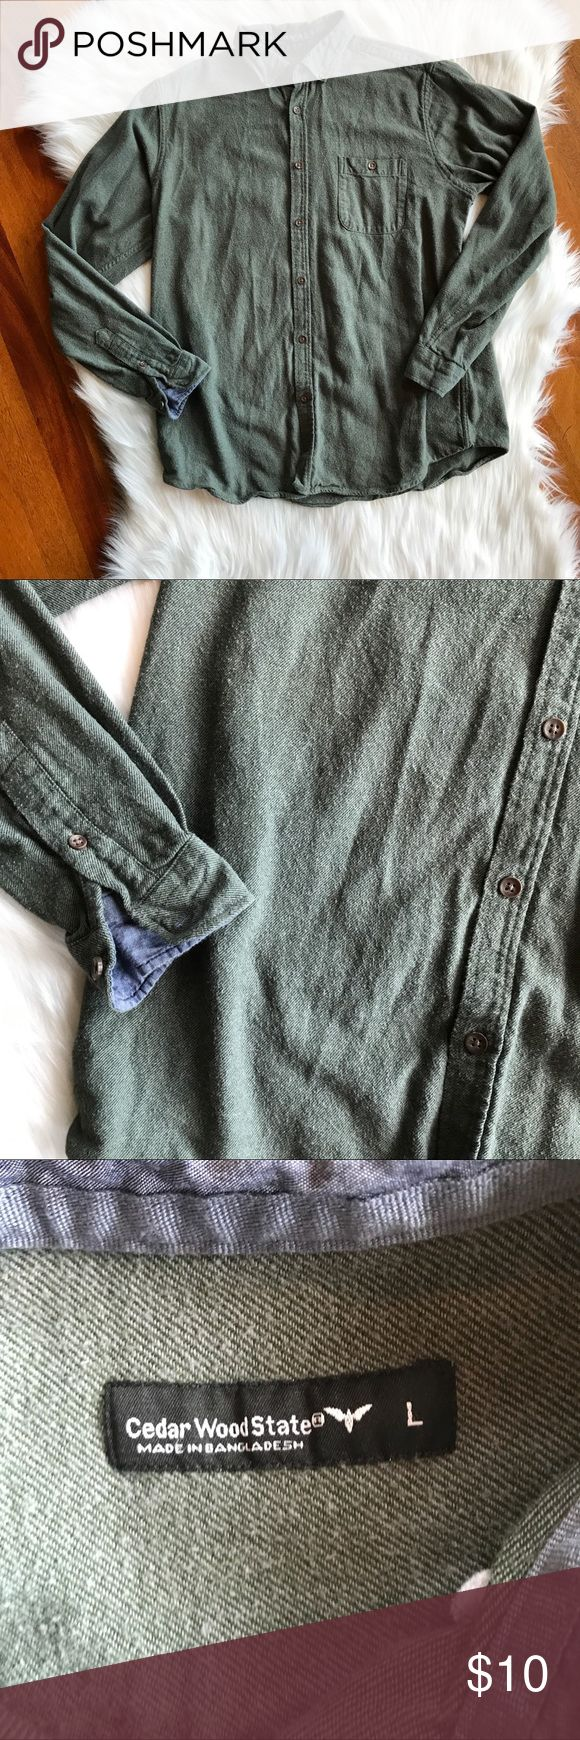 Men's Primark Green Button Down Flannel Good used condition. Minor wear but still has lots of life left. Size men's large from Primark but fits like a men's small. Perfect for upcoming fall weather. All sales final.   🌟No Returns If Item Doesn't Fit - Please Ask For Measurements Instead (Per Posh Rules)  🌟 No Trades Primark Shirts Casual Button Down Shirts